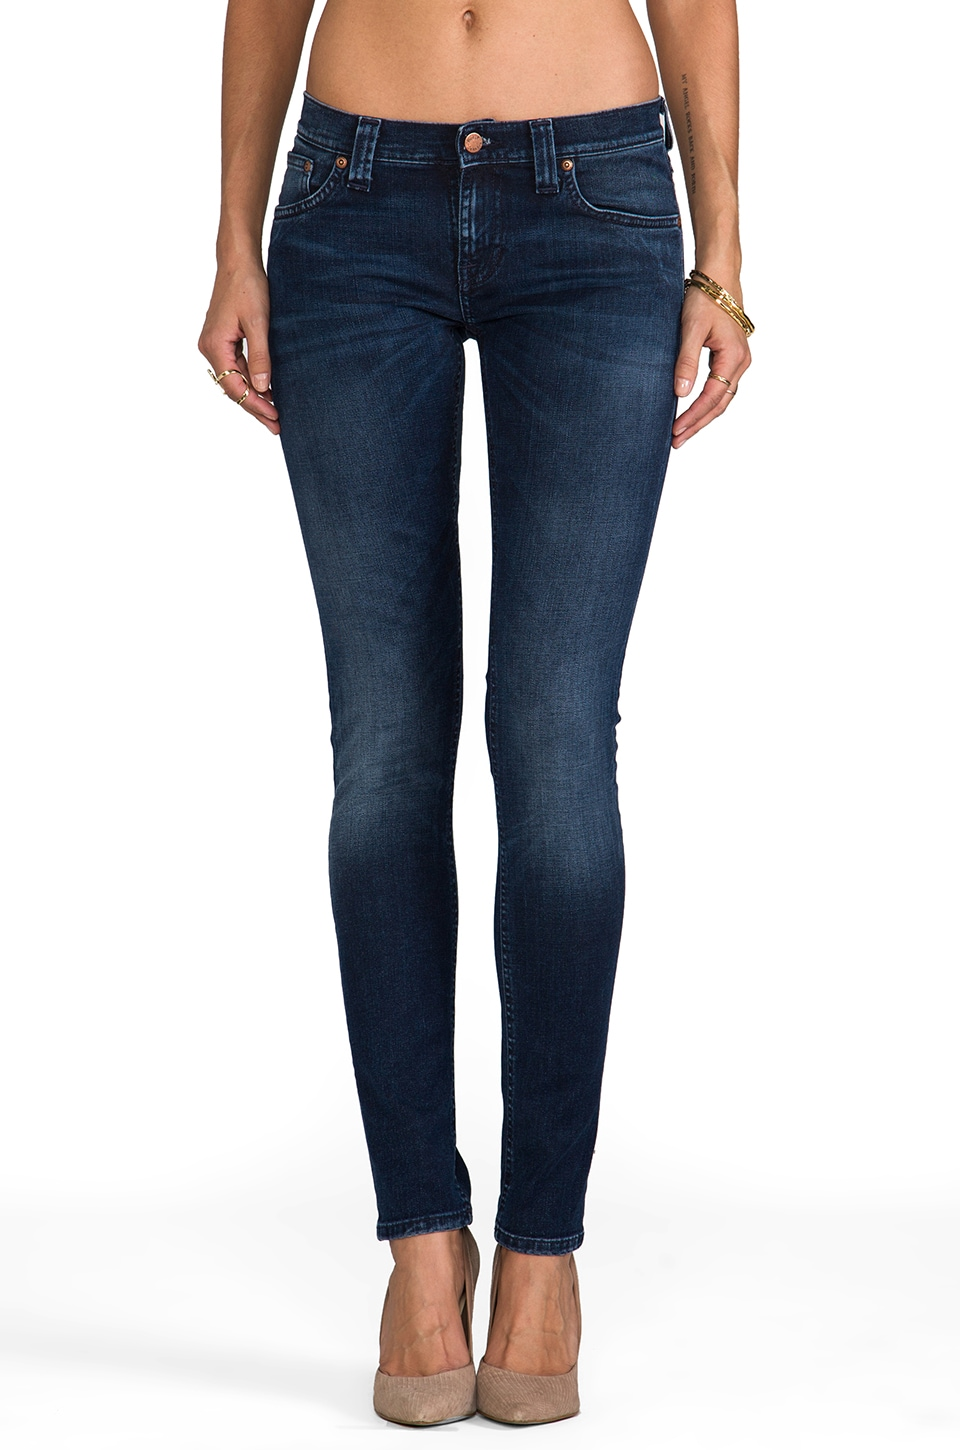 Nudie Jeans Tight Long John in Org Blue Dot